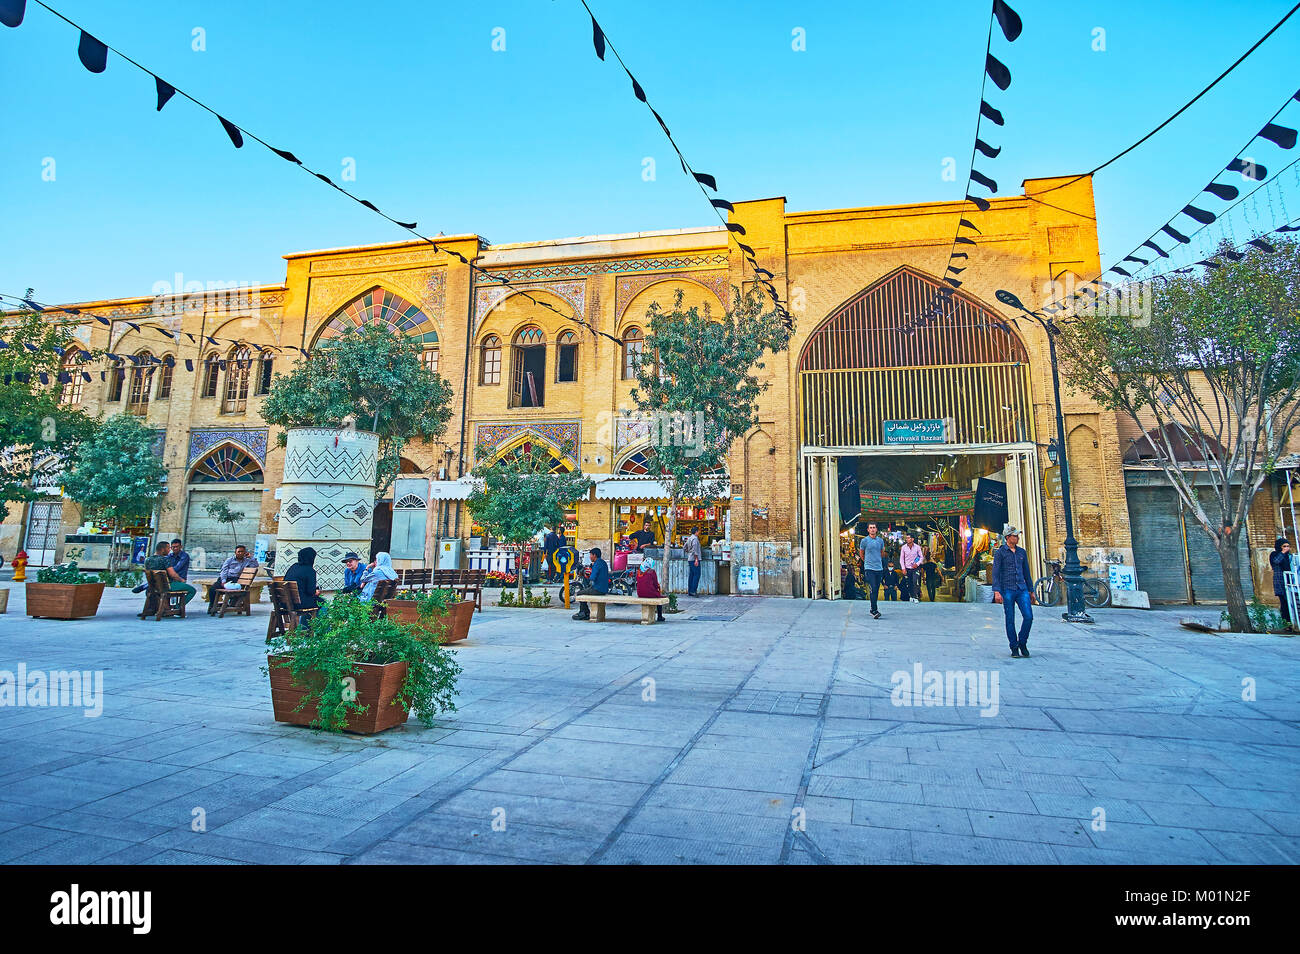 SHIRAZ, IRAN - OCTOBER 12, 2017: The Zand walking street is the central tourist promenade in old town, separating - Stock Image